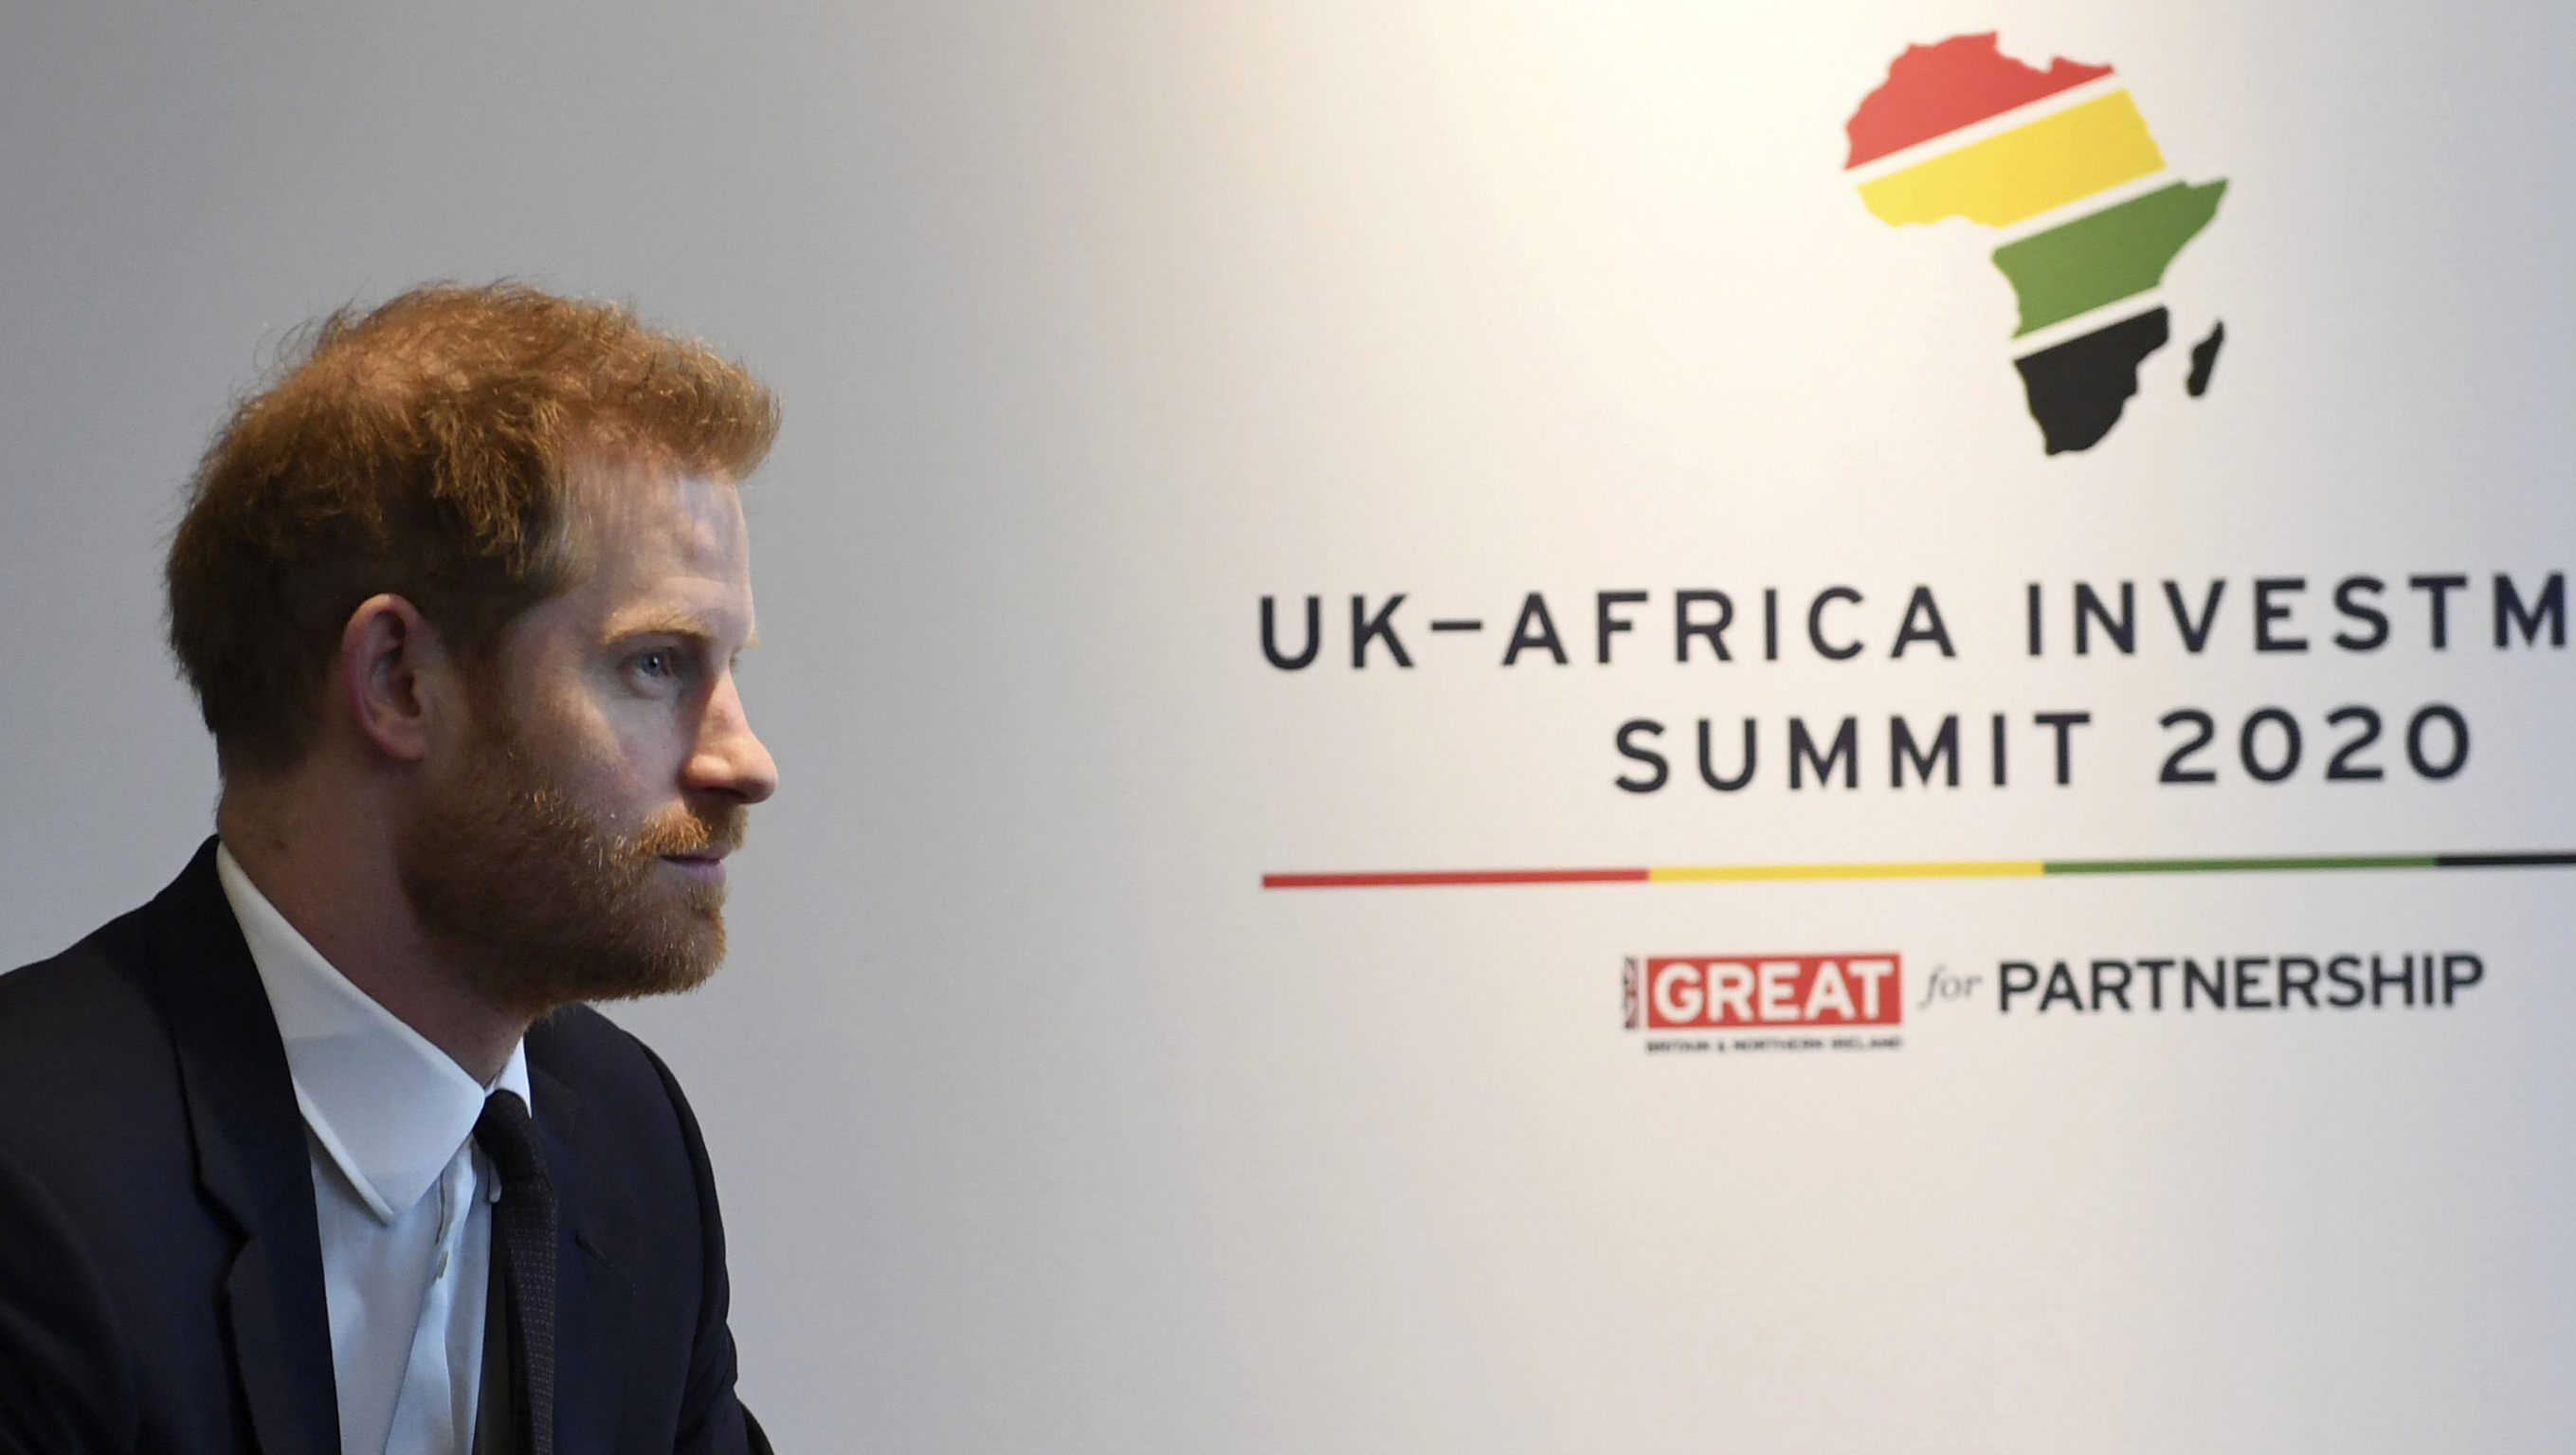 Prince Harry meets with Prime Minister of Morocco Saadeddine Othmani at the UK Africa Investment Summit in London, Monday January 20, 2020